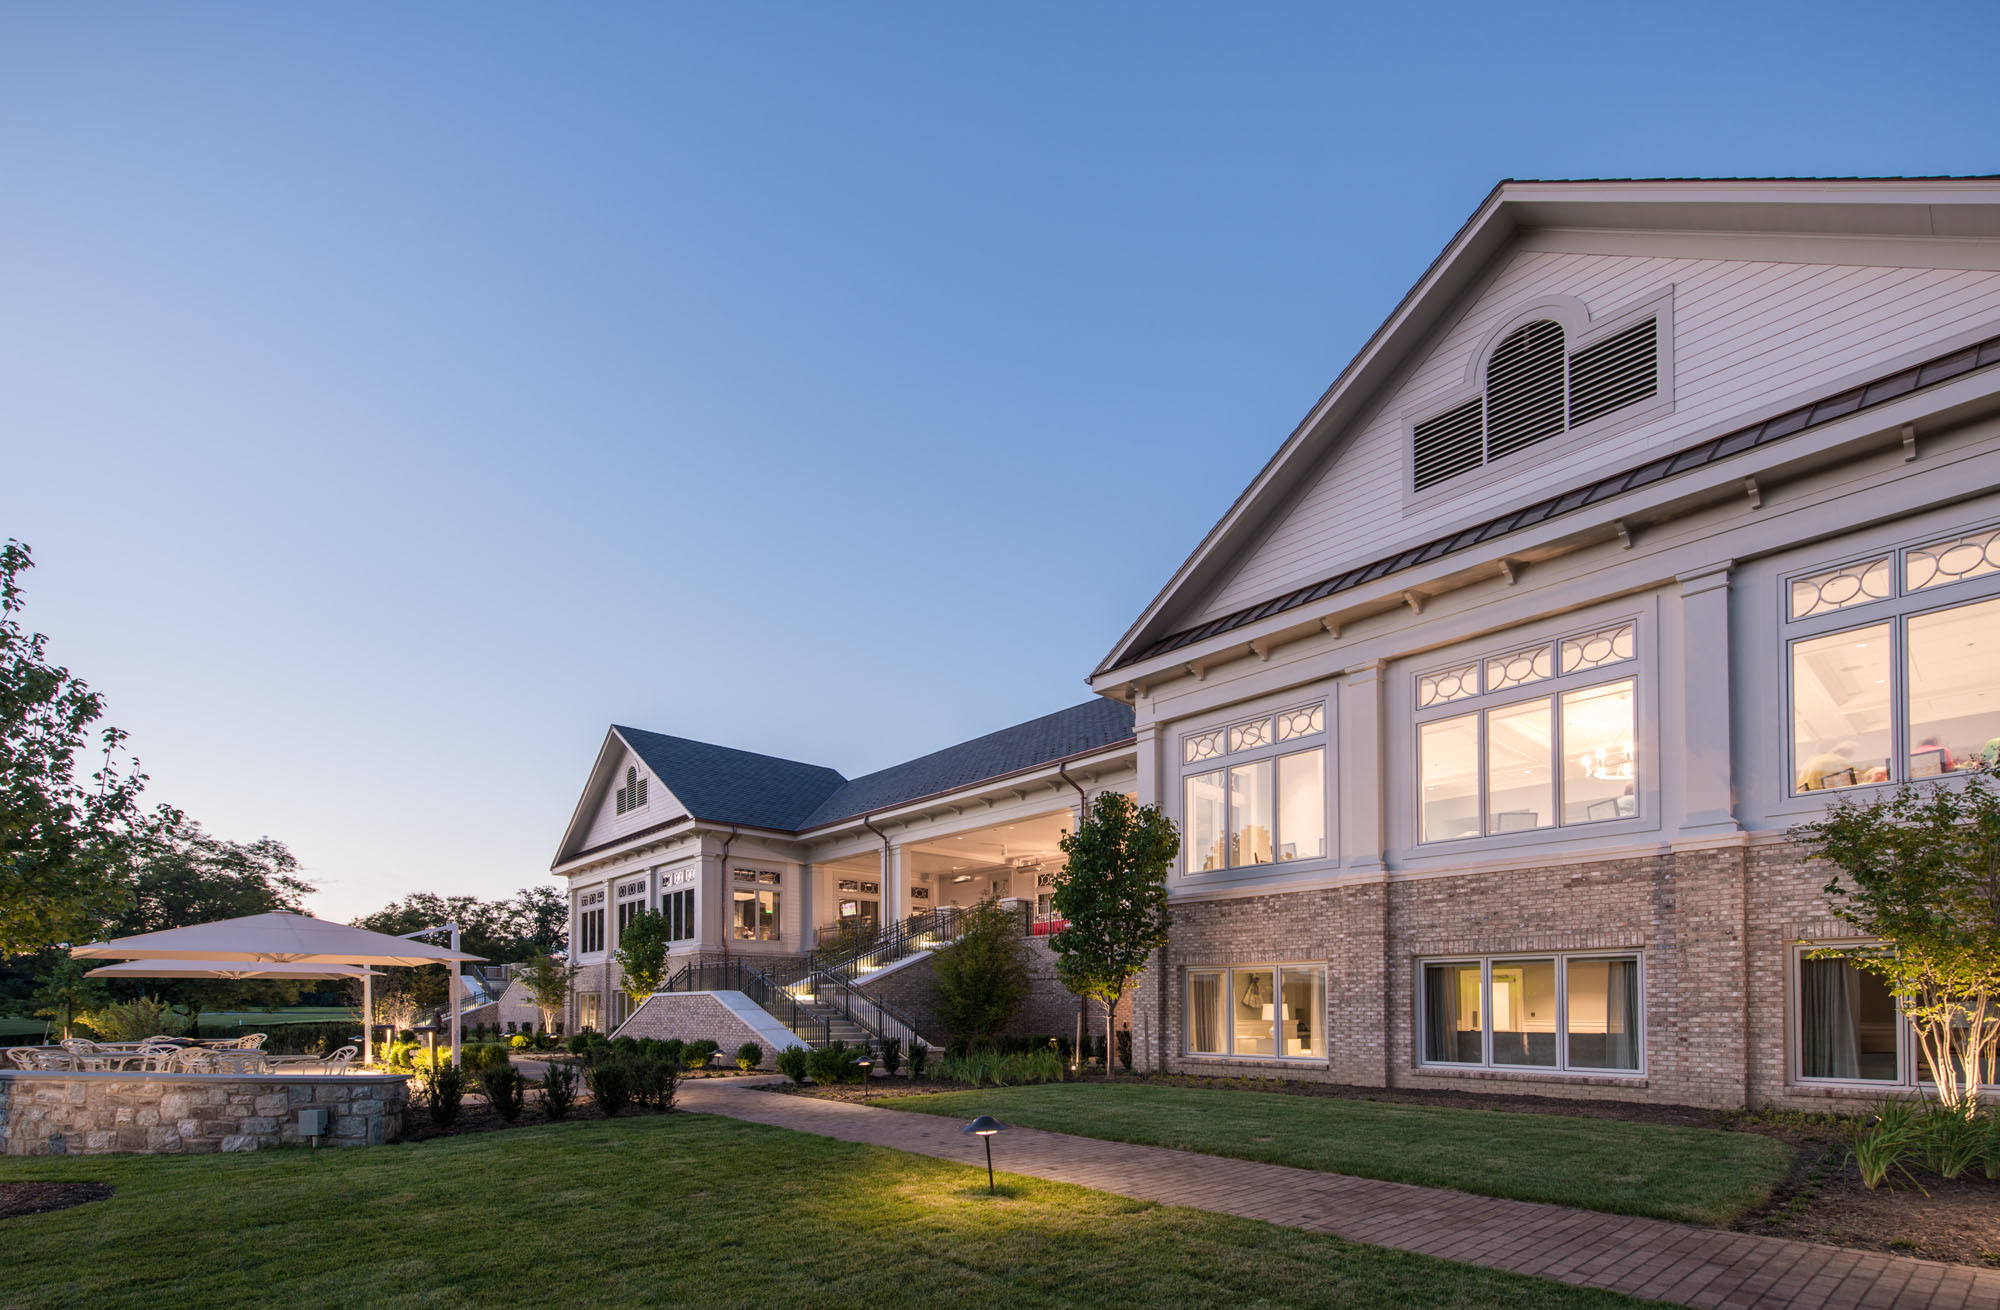 Woodmont Country Club Exterior Image203563.jpg